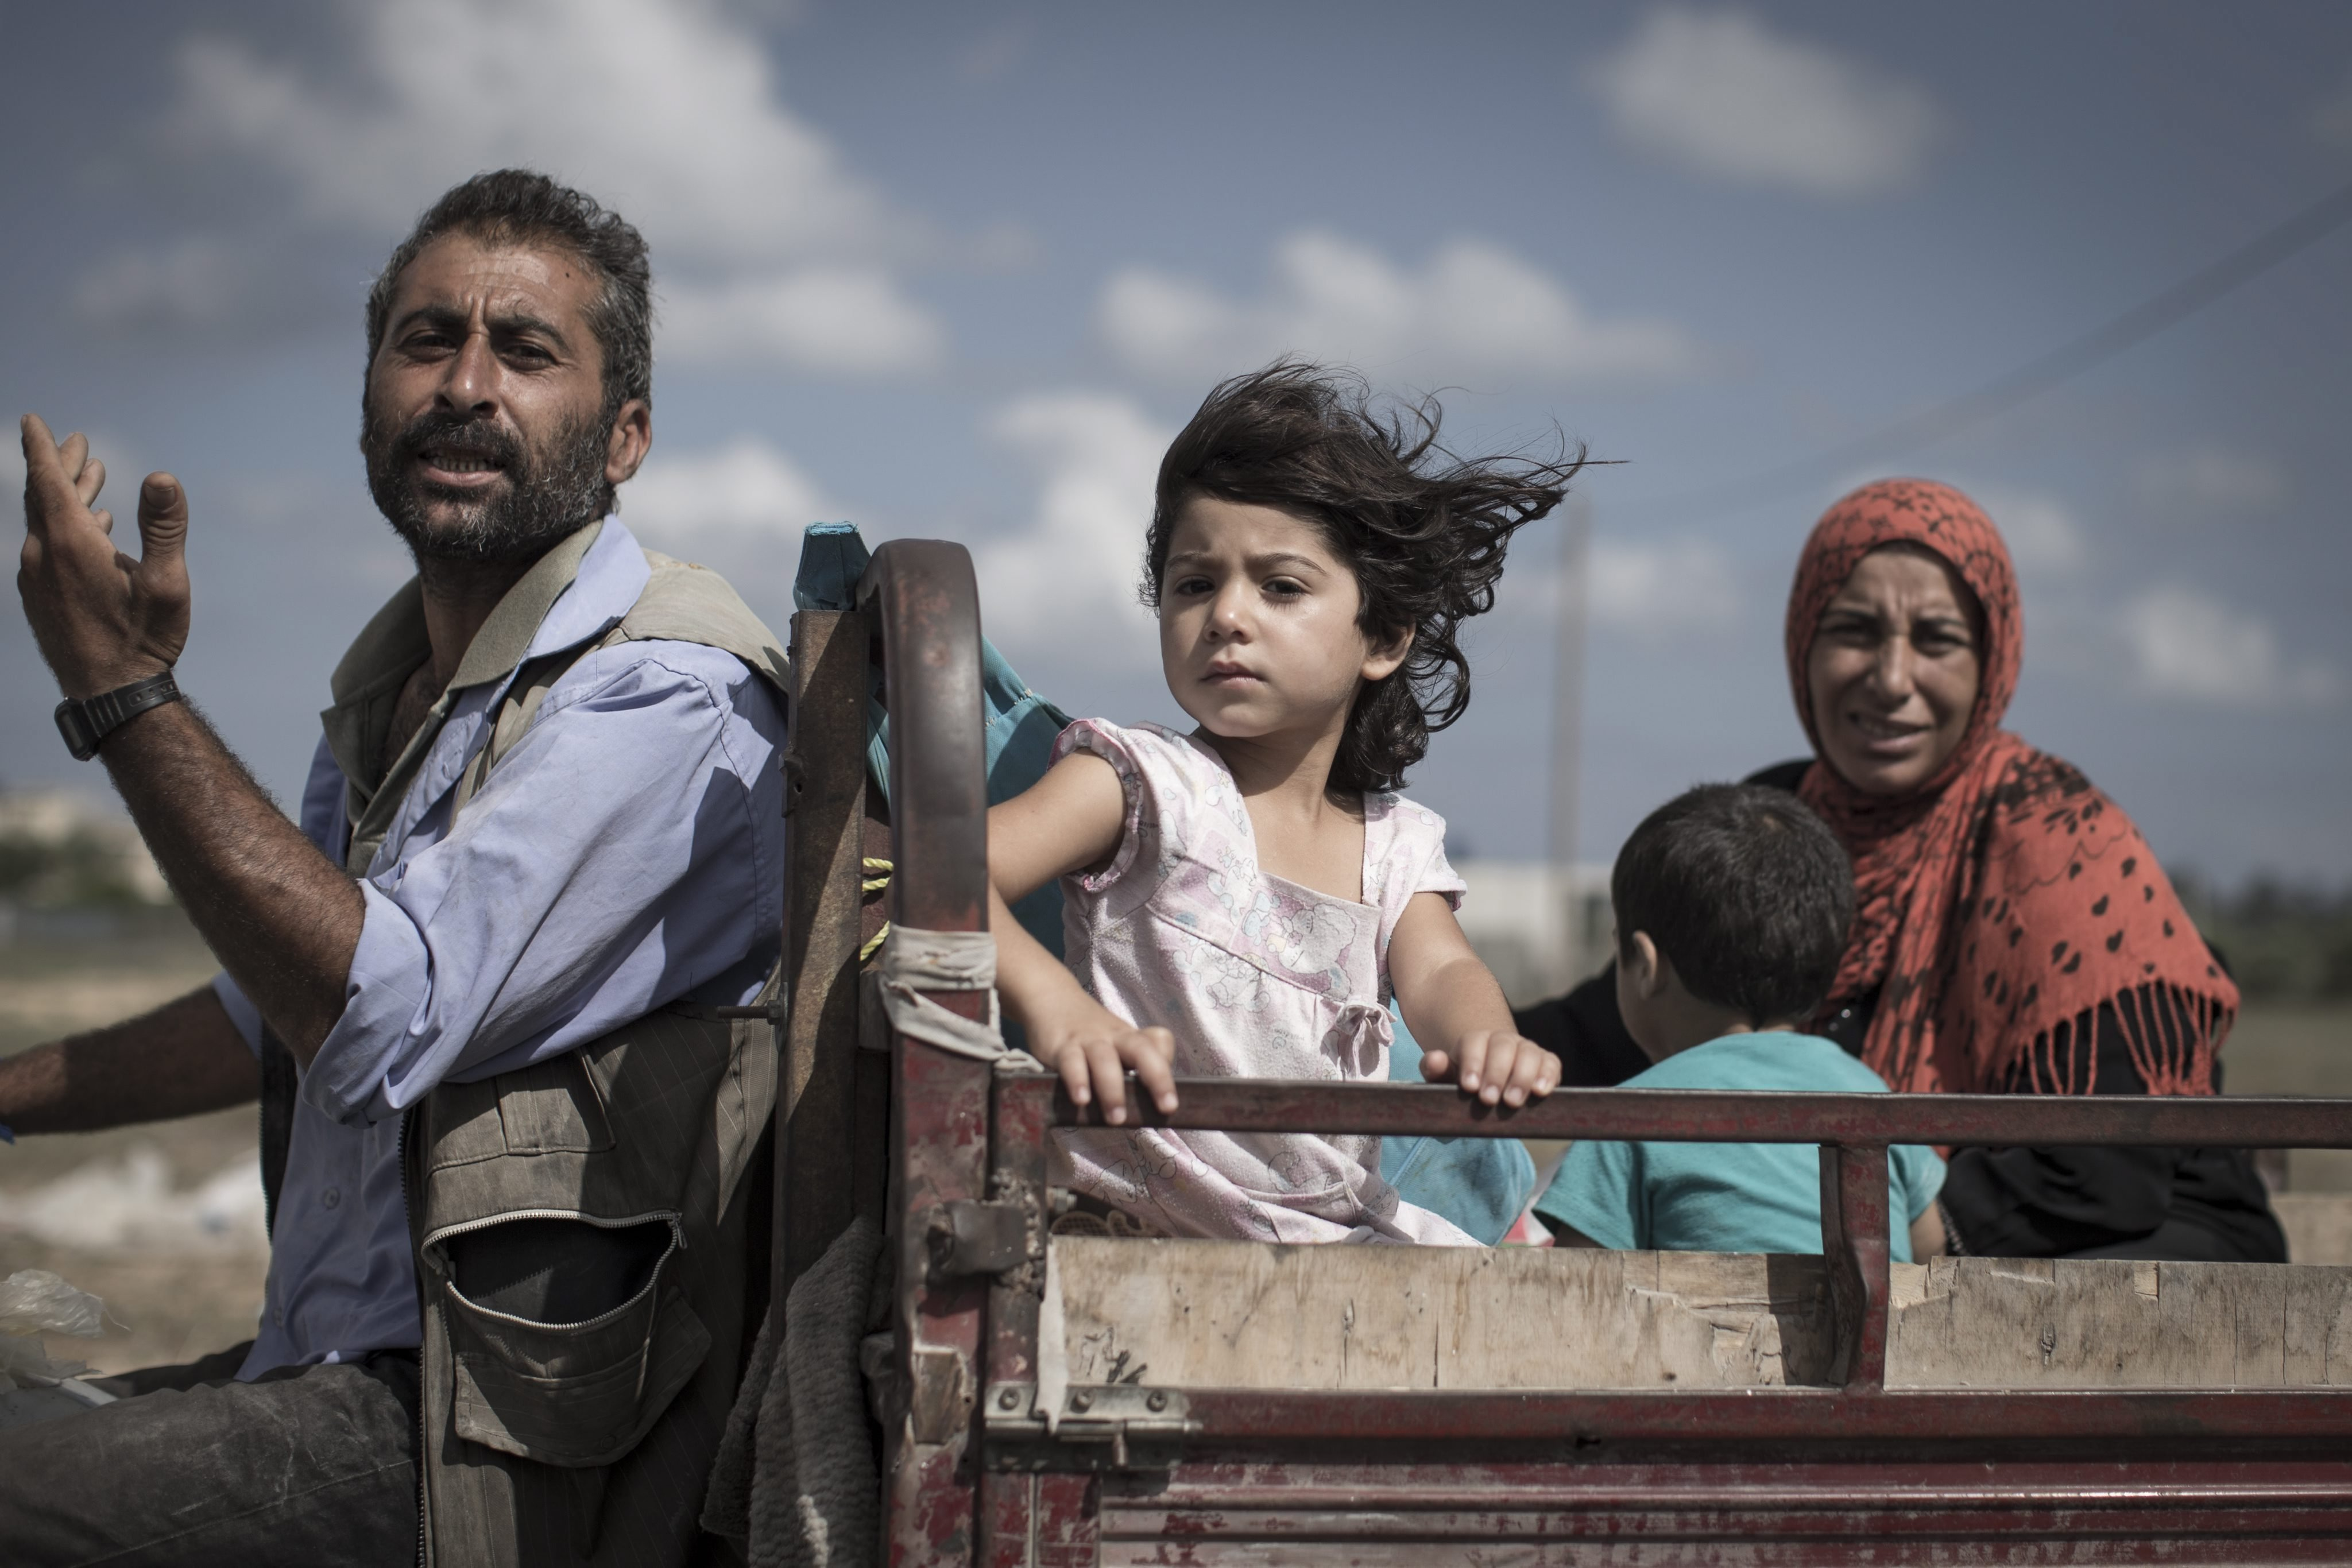 A Palestinian family who fled their homes is en route to seek shelter in a UN school in Khan Younis, Gaza Strip on July 18, 2014.